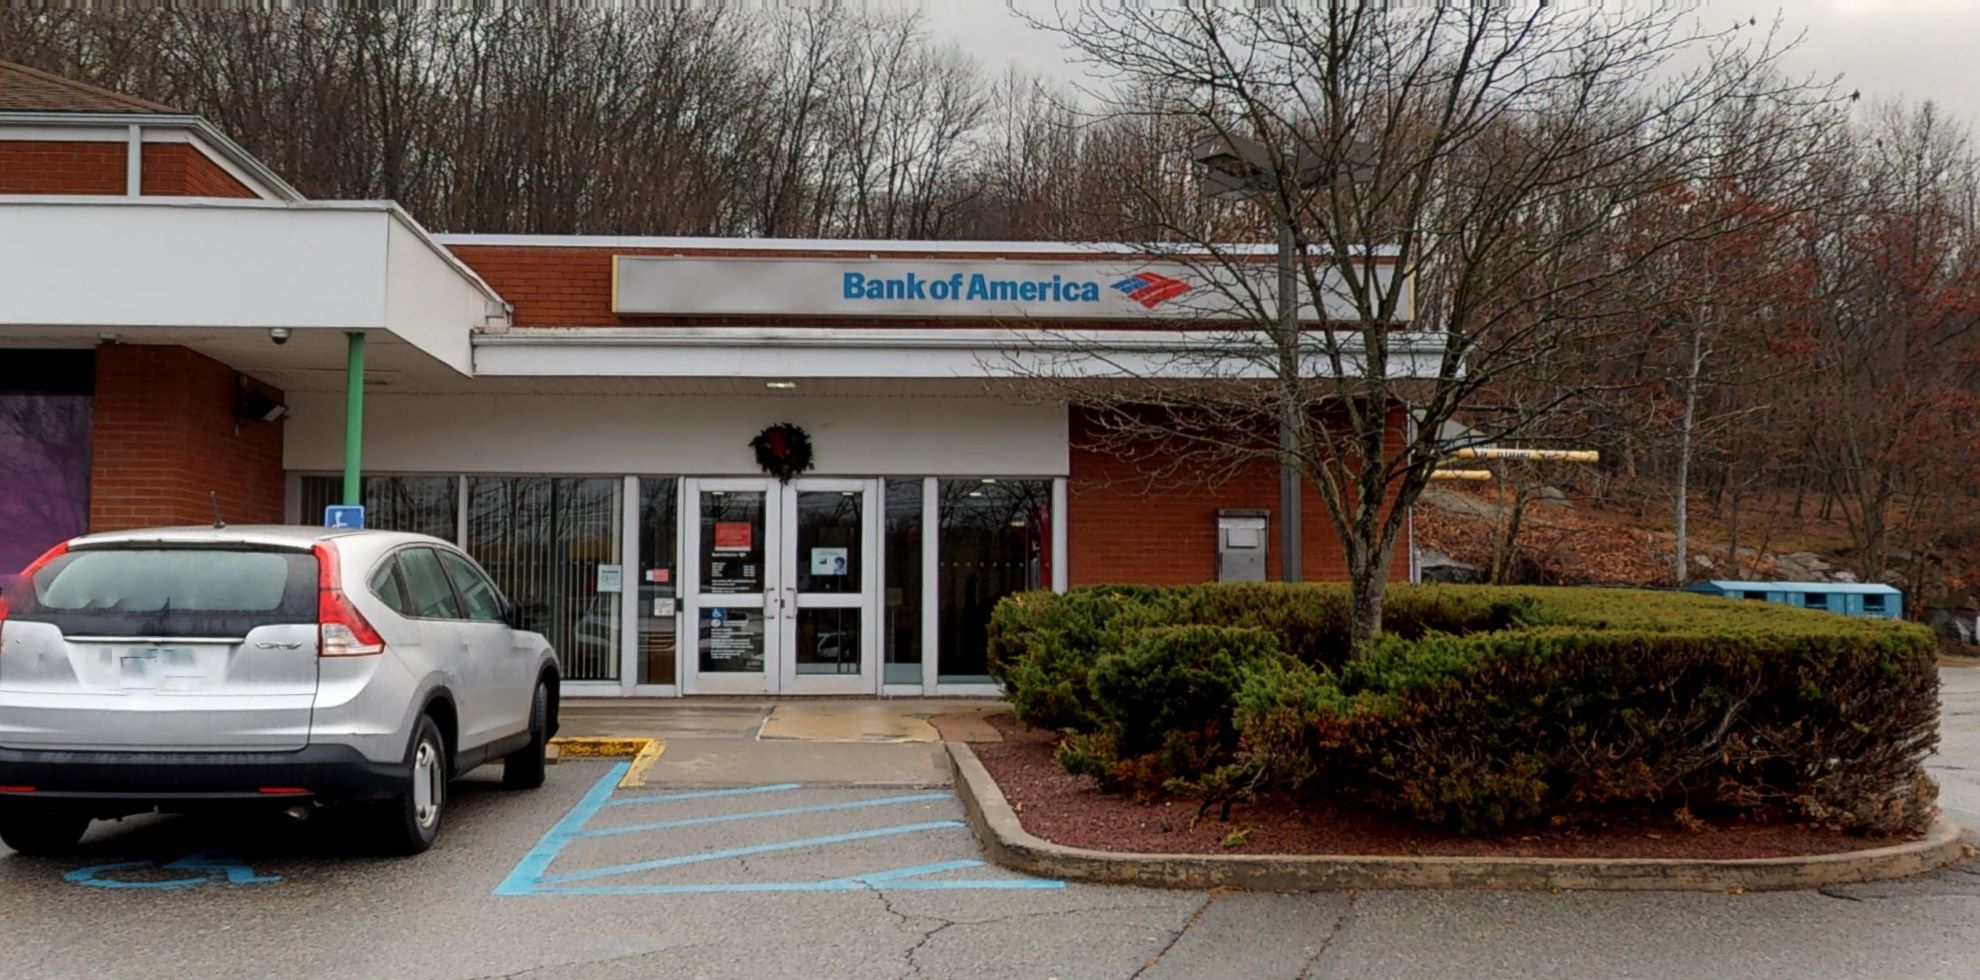 Bank of America financial center with drive-thru ATM   130 N County Shopping Ctr, Goldens Bridge, NY 10526